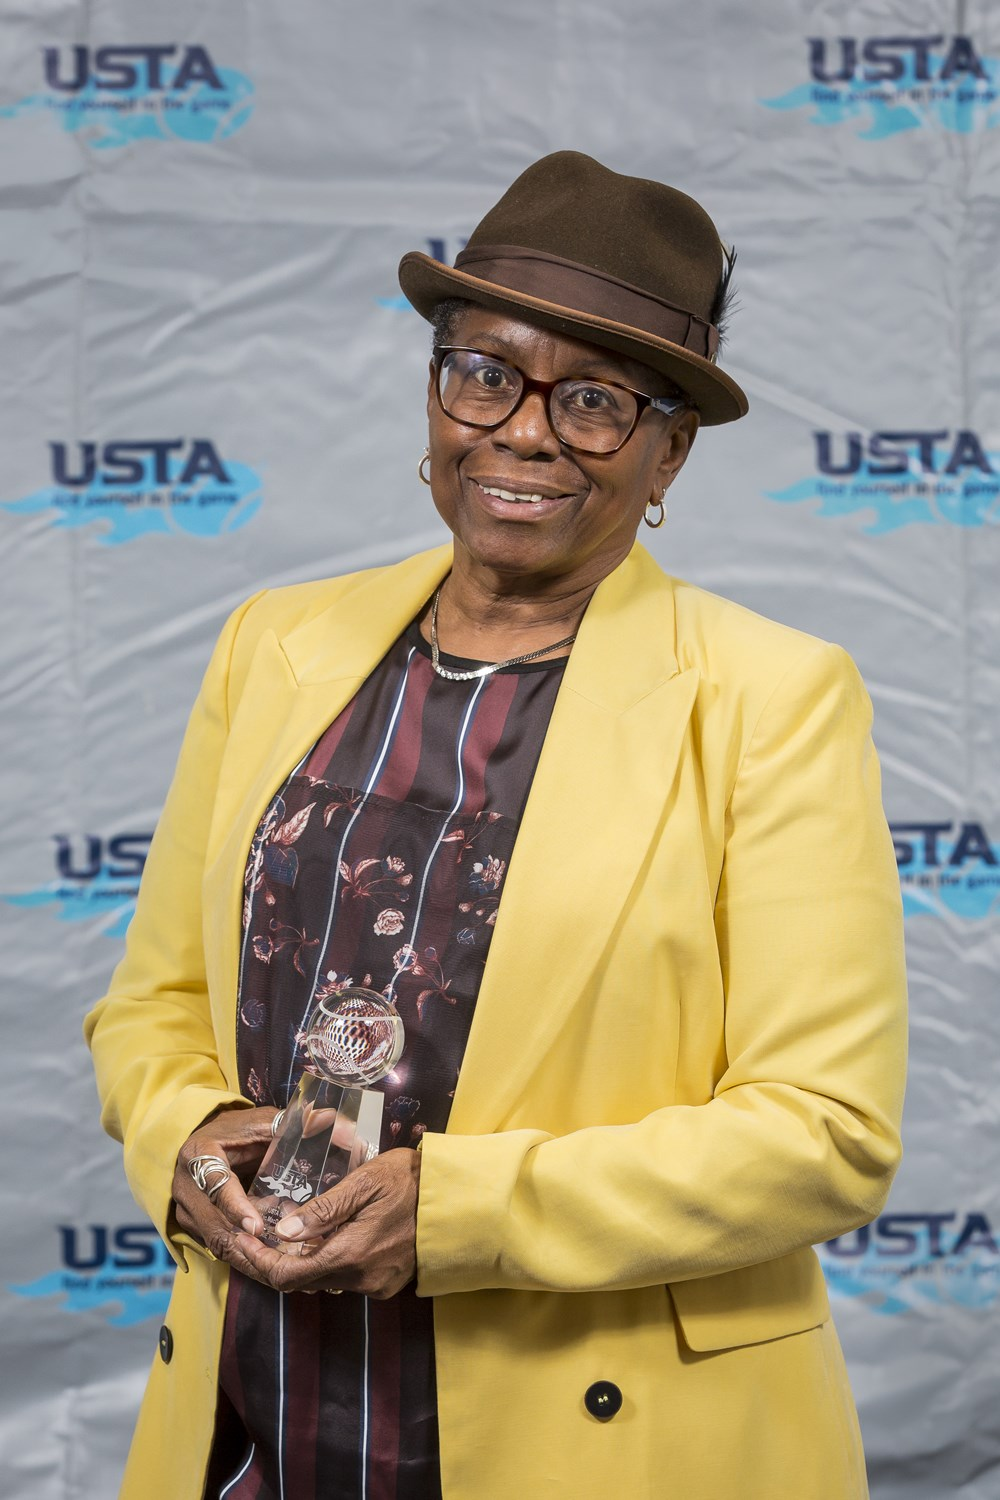 Val_Walker_-_2017_USTA_Georgia_Official_of_the_Year